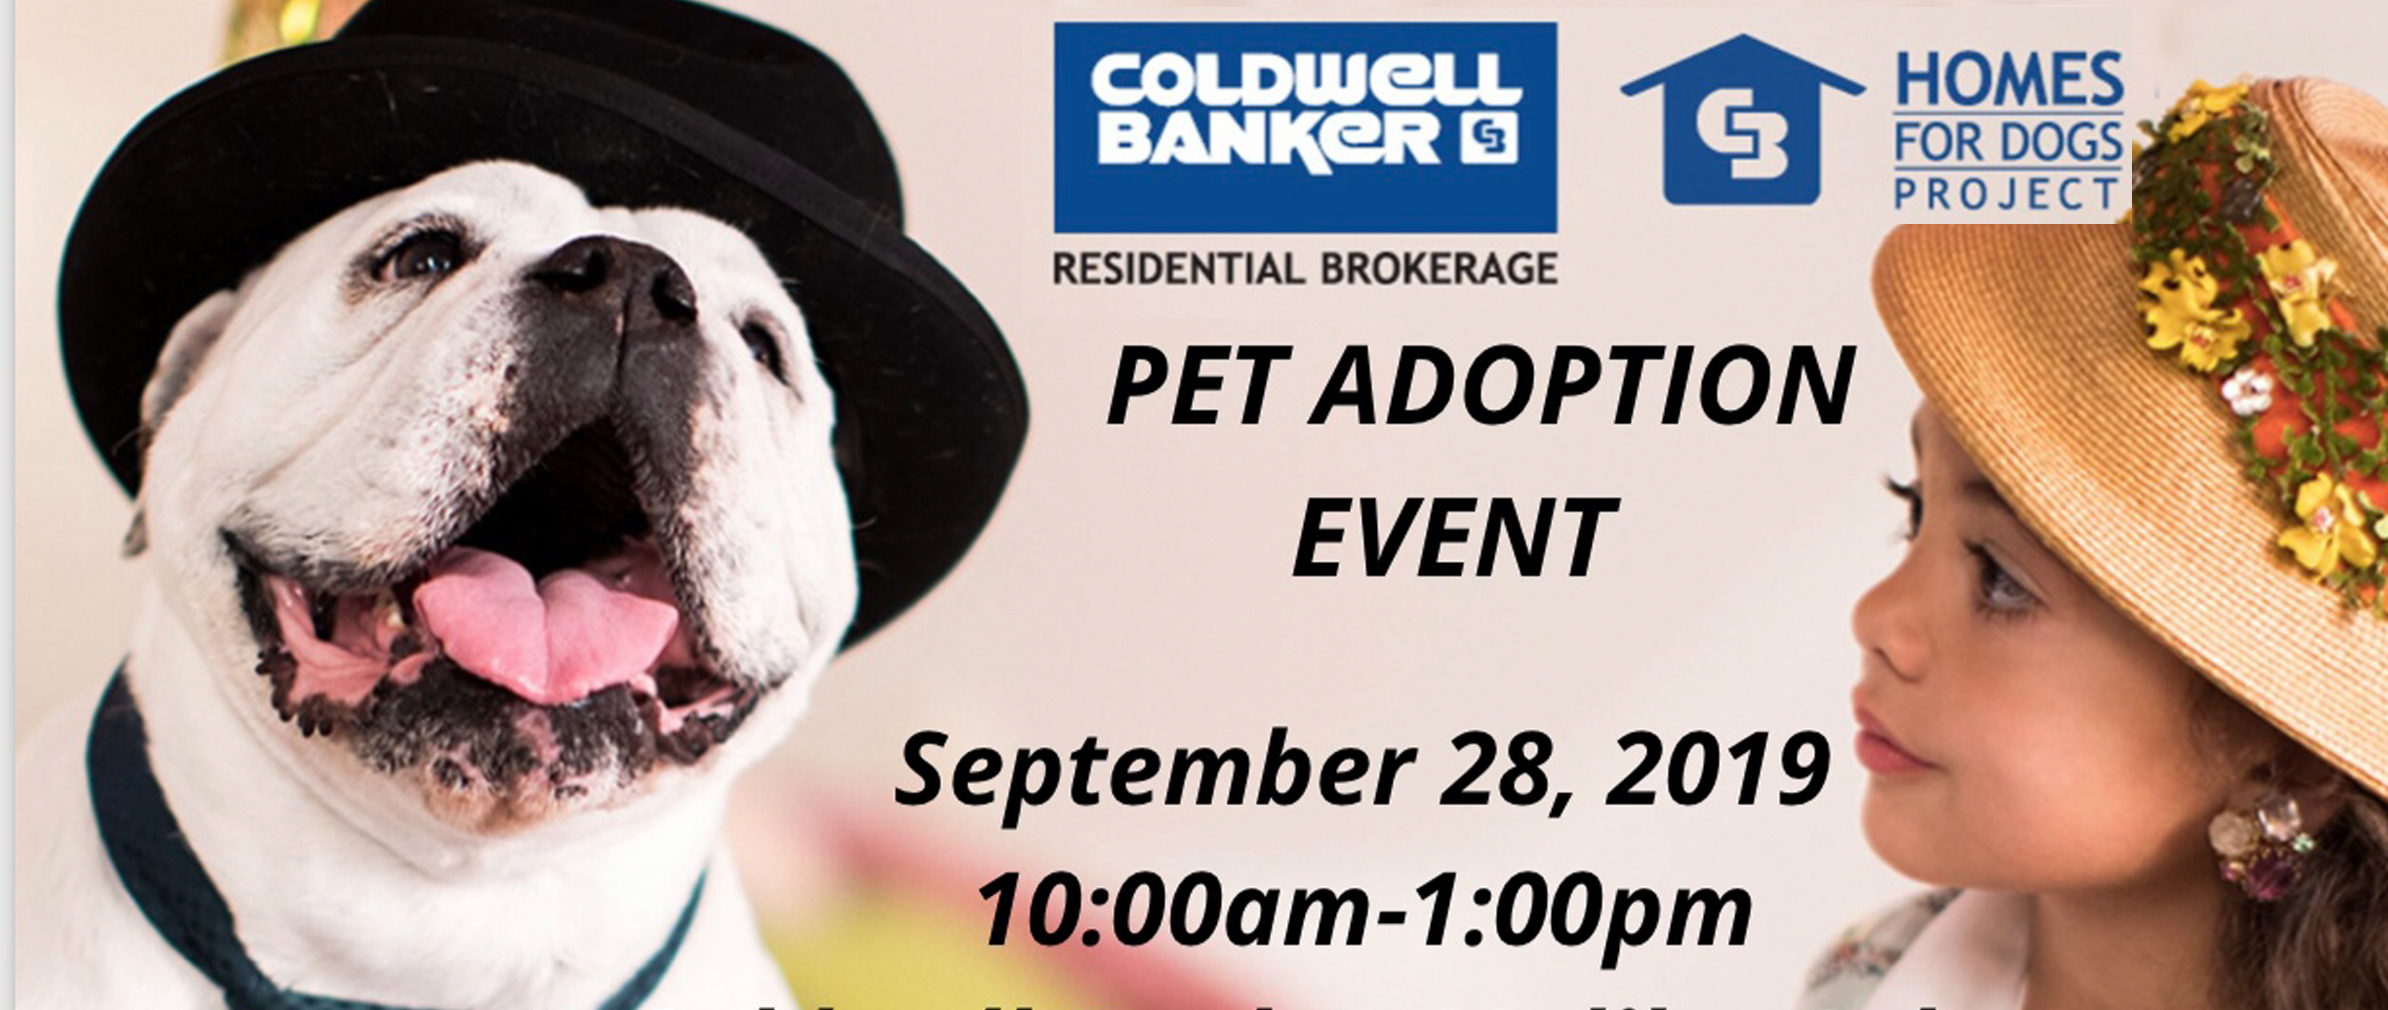 adoption event